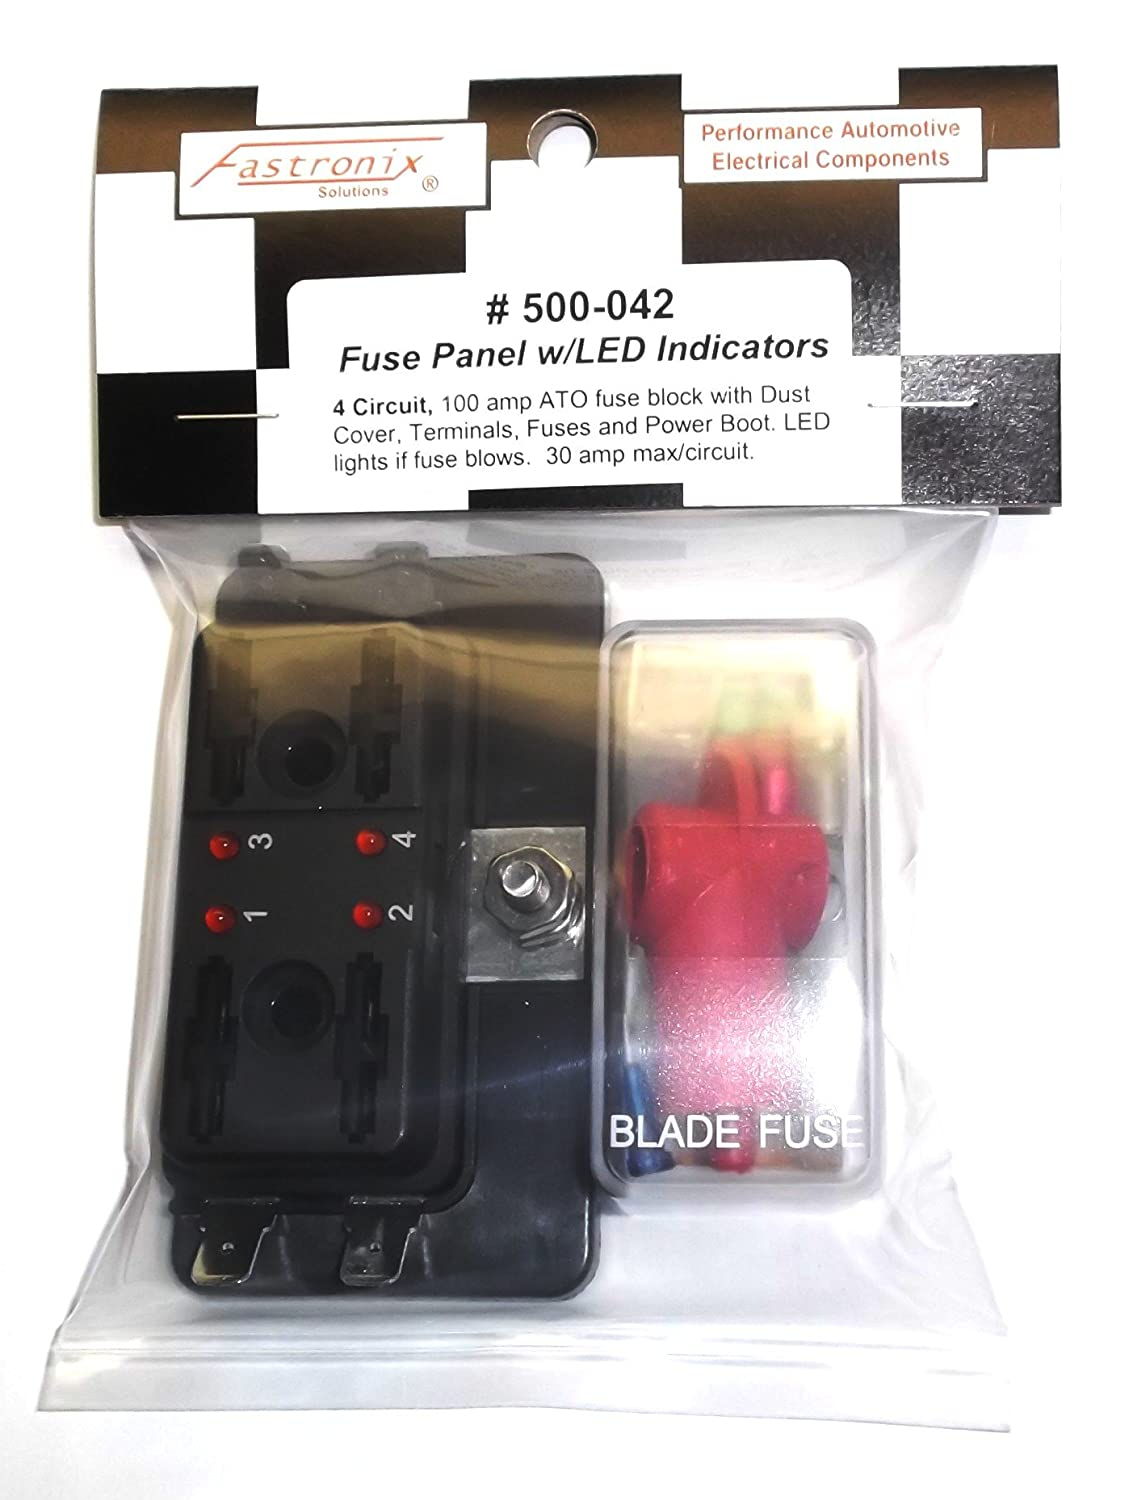 Fastronix 4 Circuit Led Fuse Block And Cover Kit With Automotive Box Amps Ato Atc Fuses